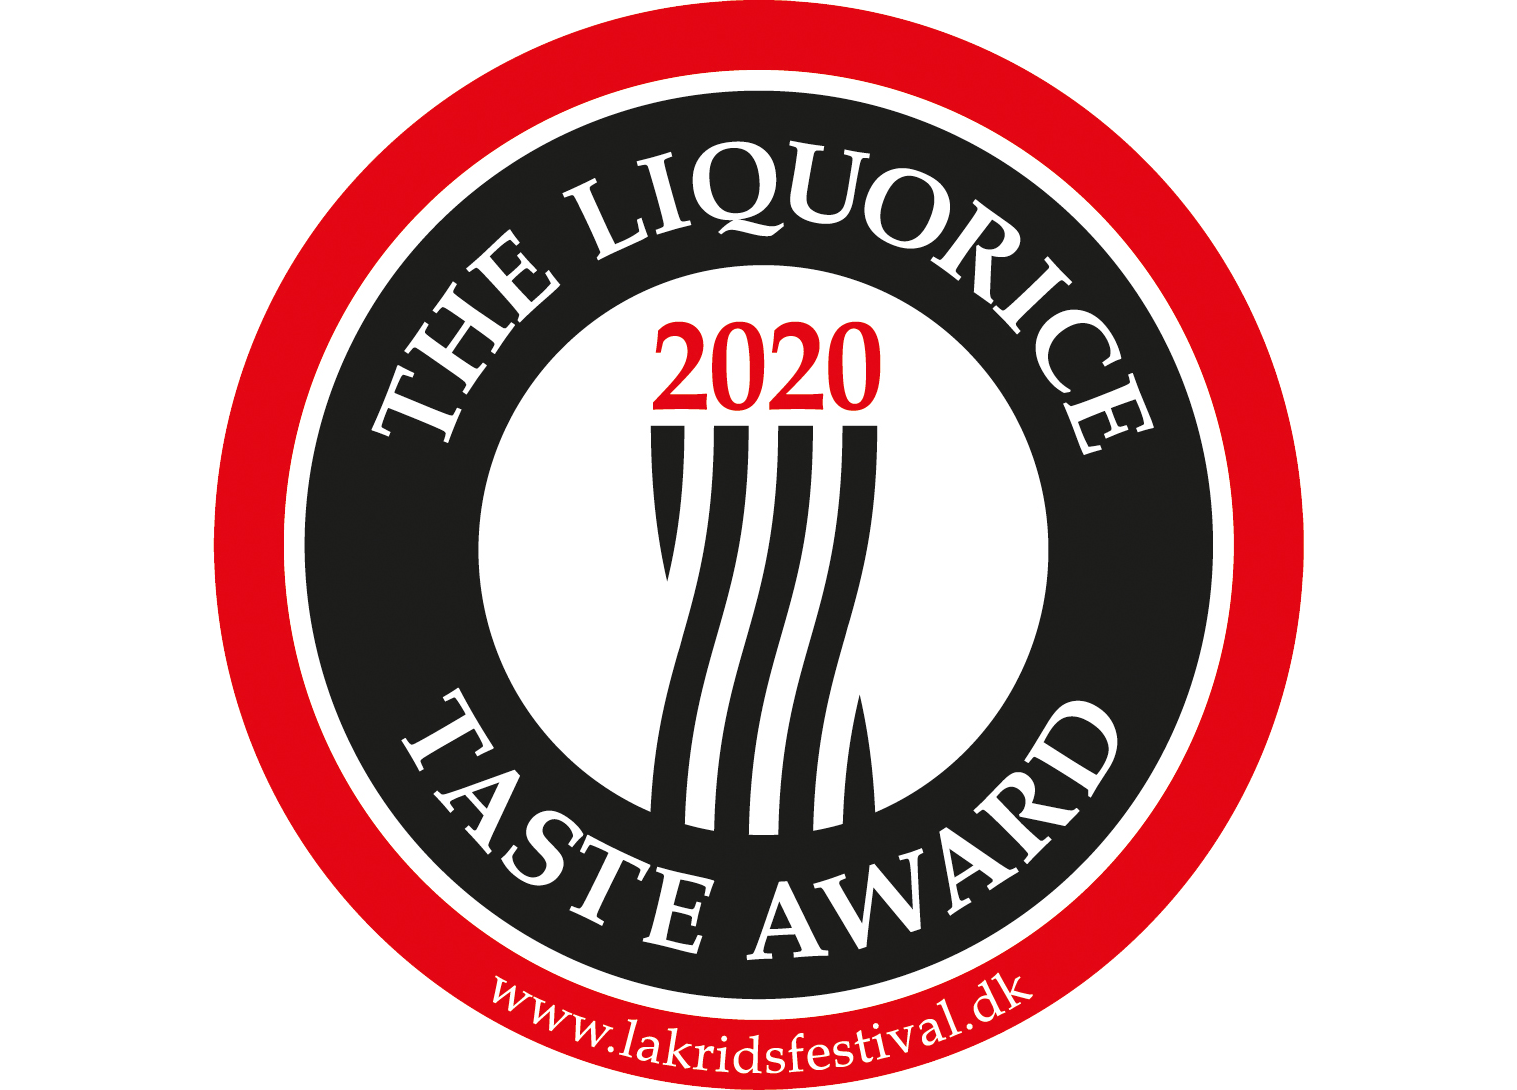 The Taste of Liquorice Award 2020